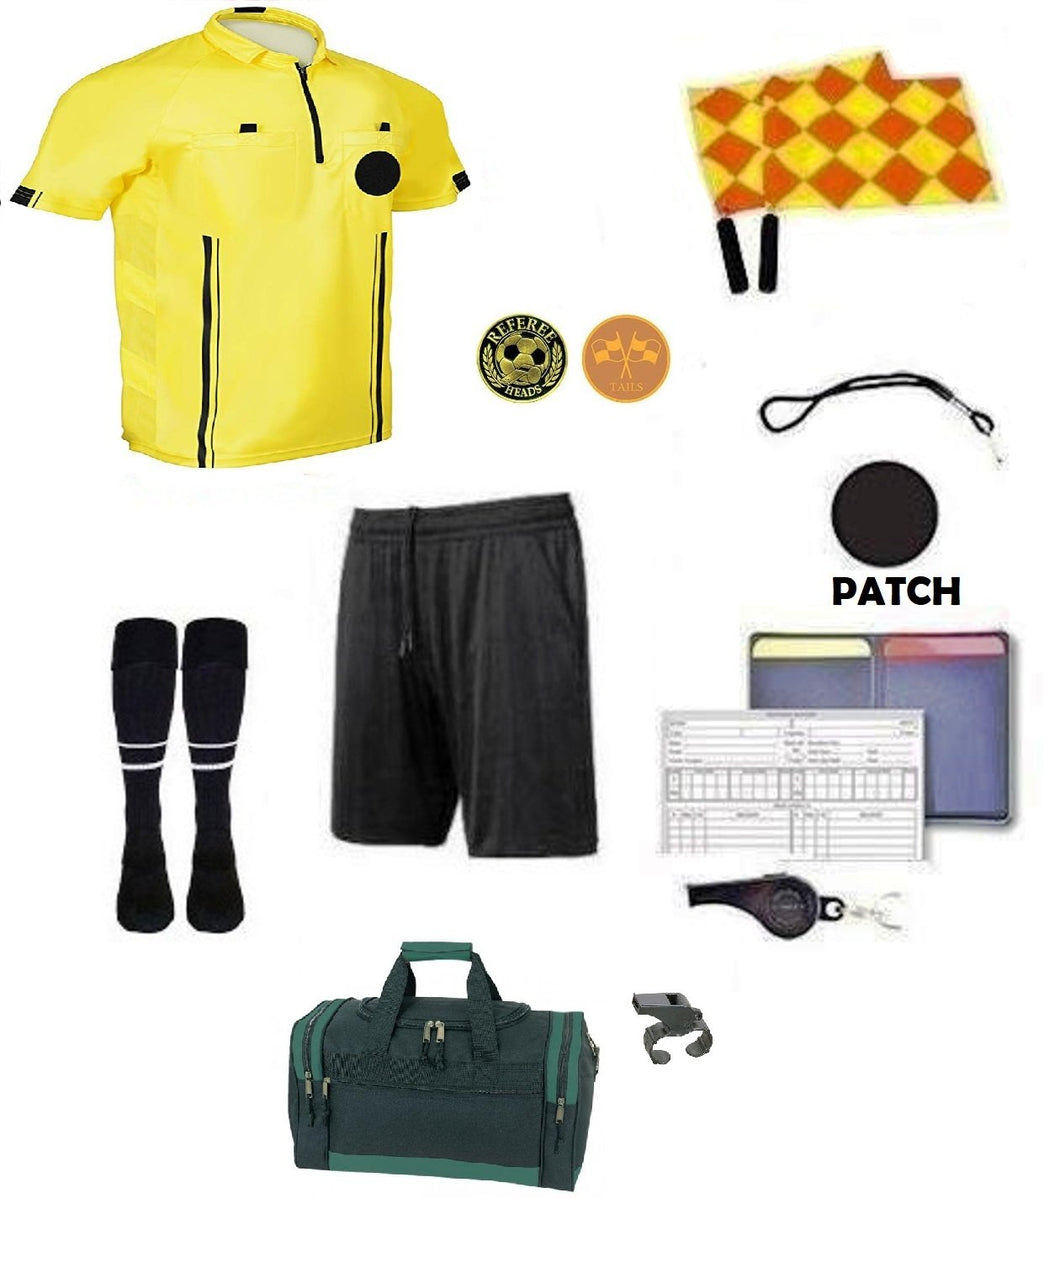 12 Piece Soccer Package Referee Jersey Short Flag Whistles Duffel Bag Coin